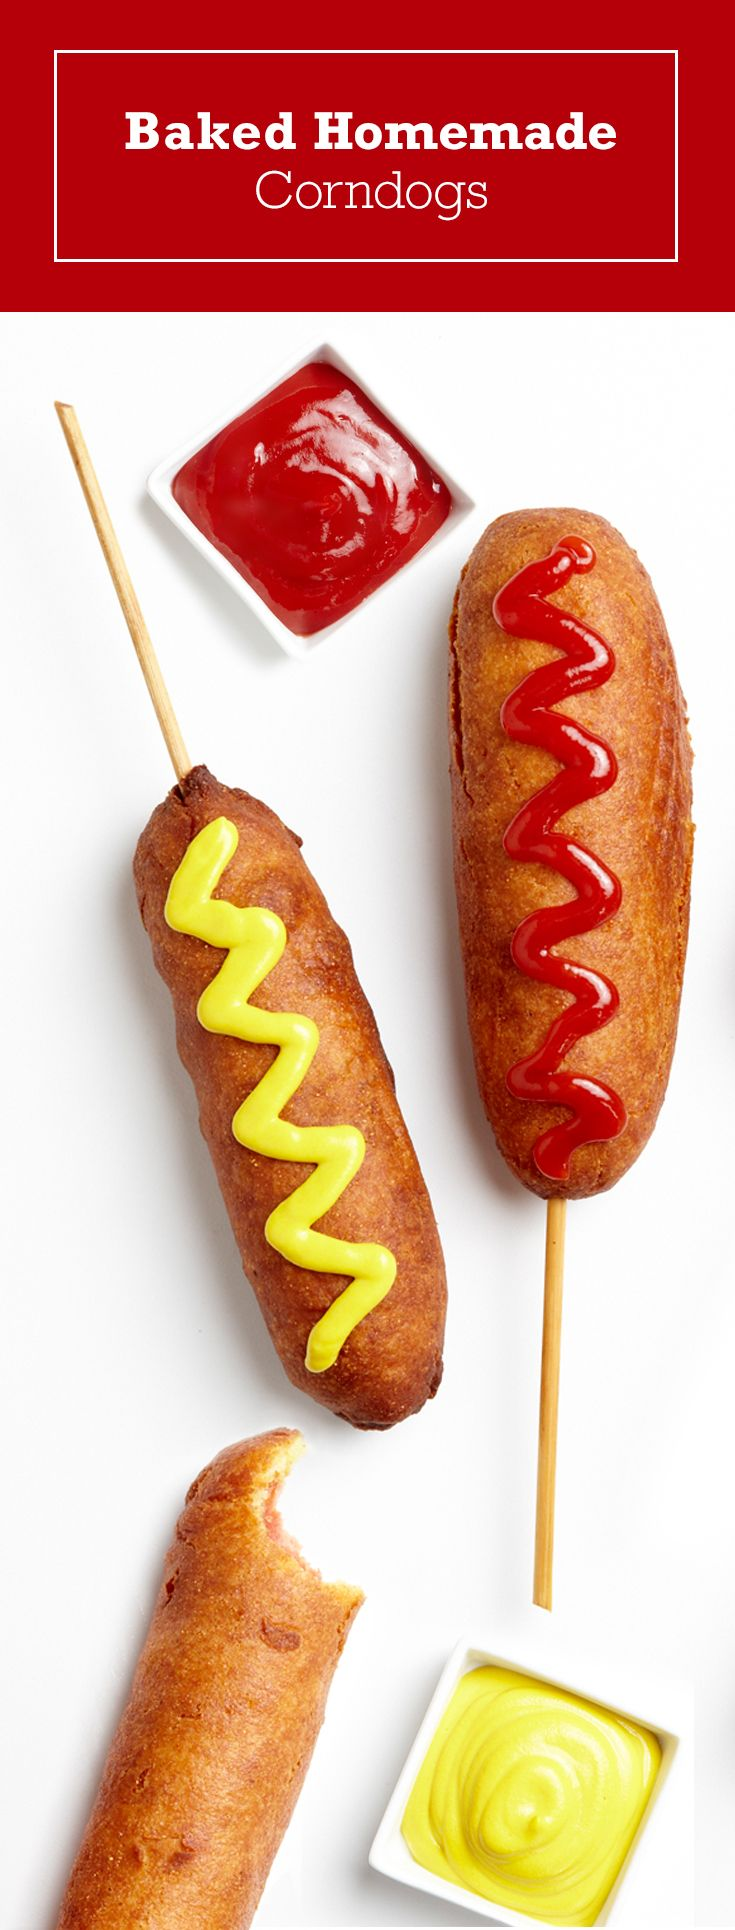 Try our healthy twist on a carnival classic with baked corn dogs! Get your state fair fix at home with our recipe for homemade corn dogs.